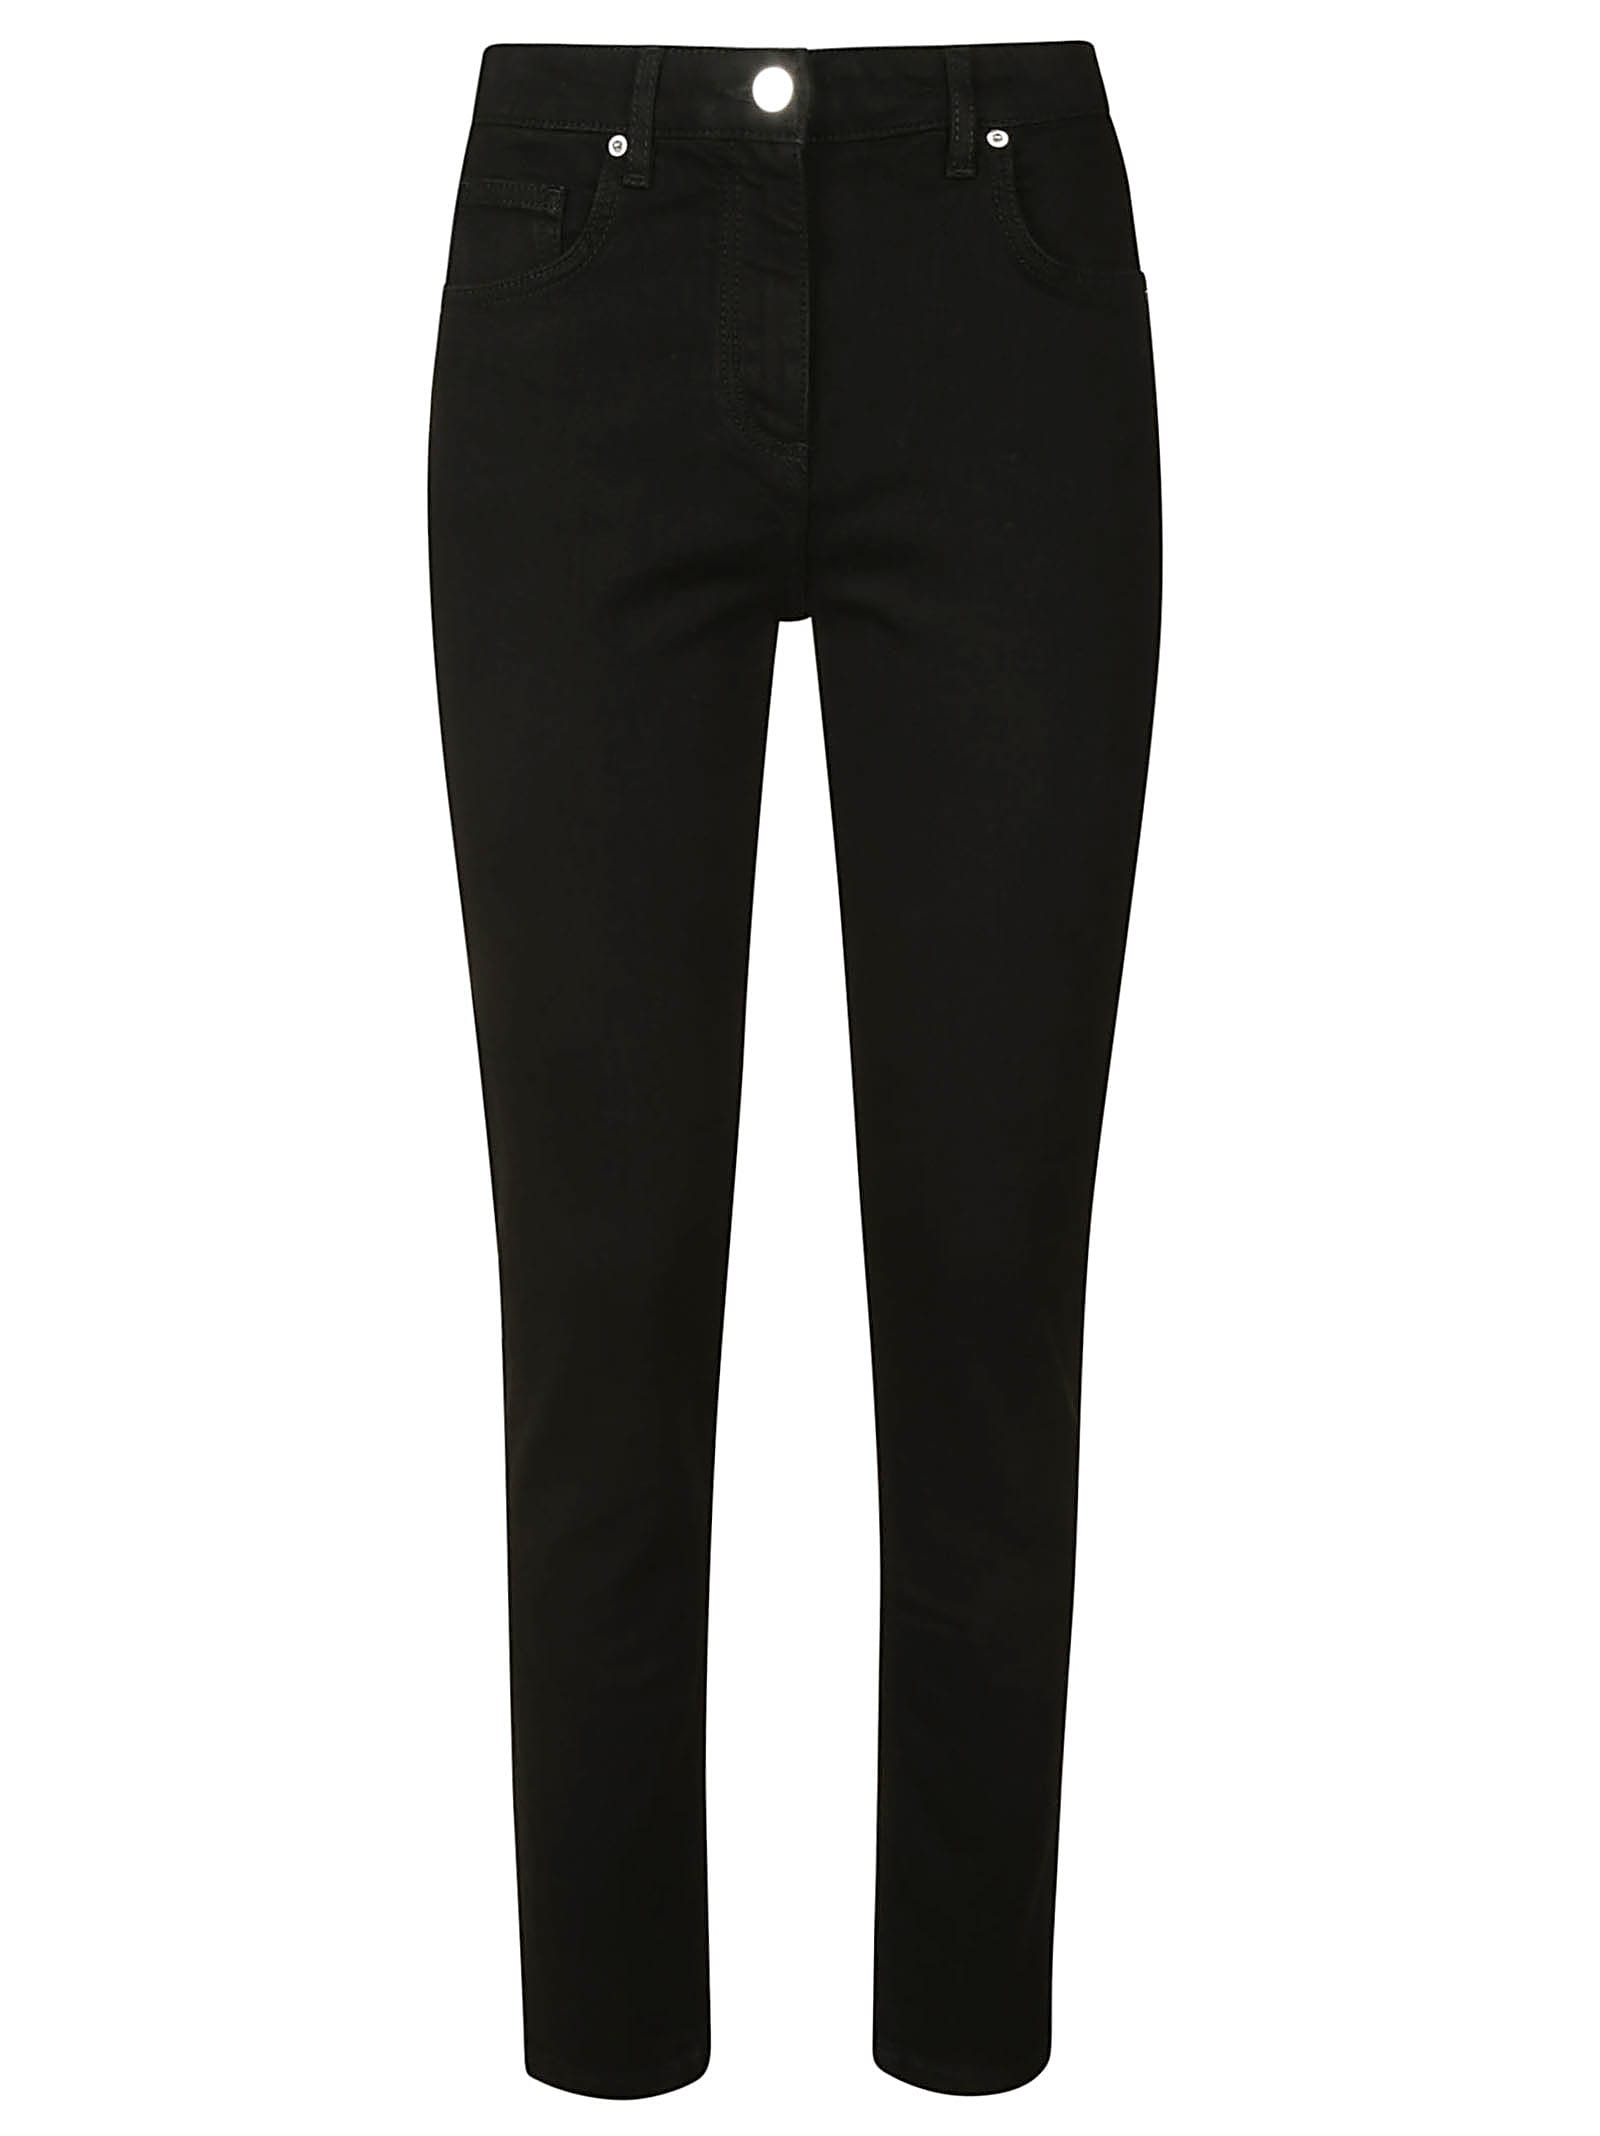 Long Length Fitted Jeans